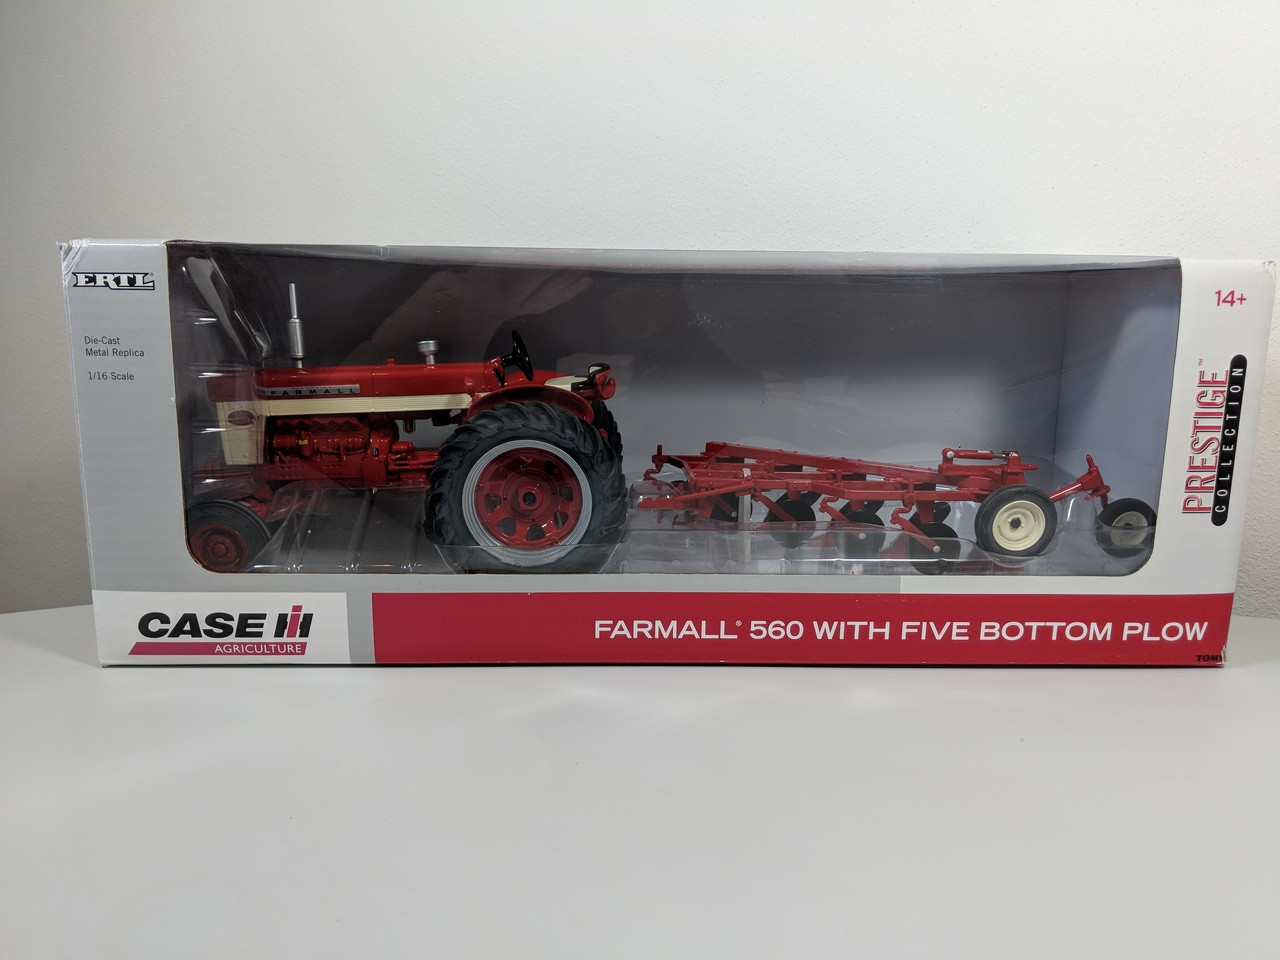 hight resolution of 1 16 farmall 560 diesel tractor with 5 bottom plow prestige edition set also 806 farmall tractor wiring harness in addition 560 farmall